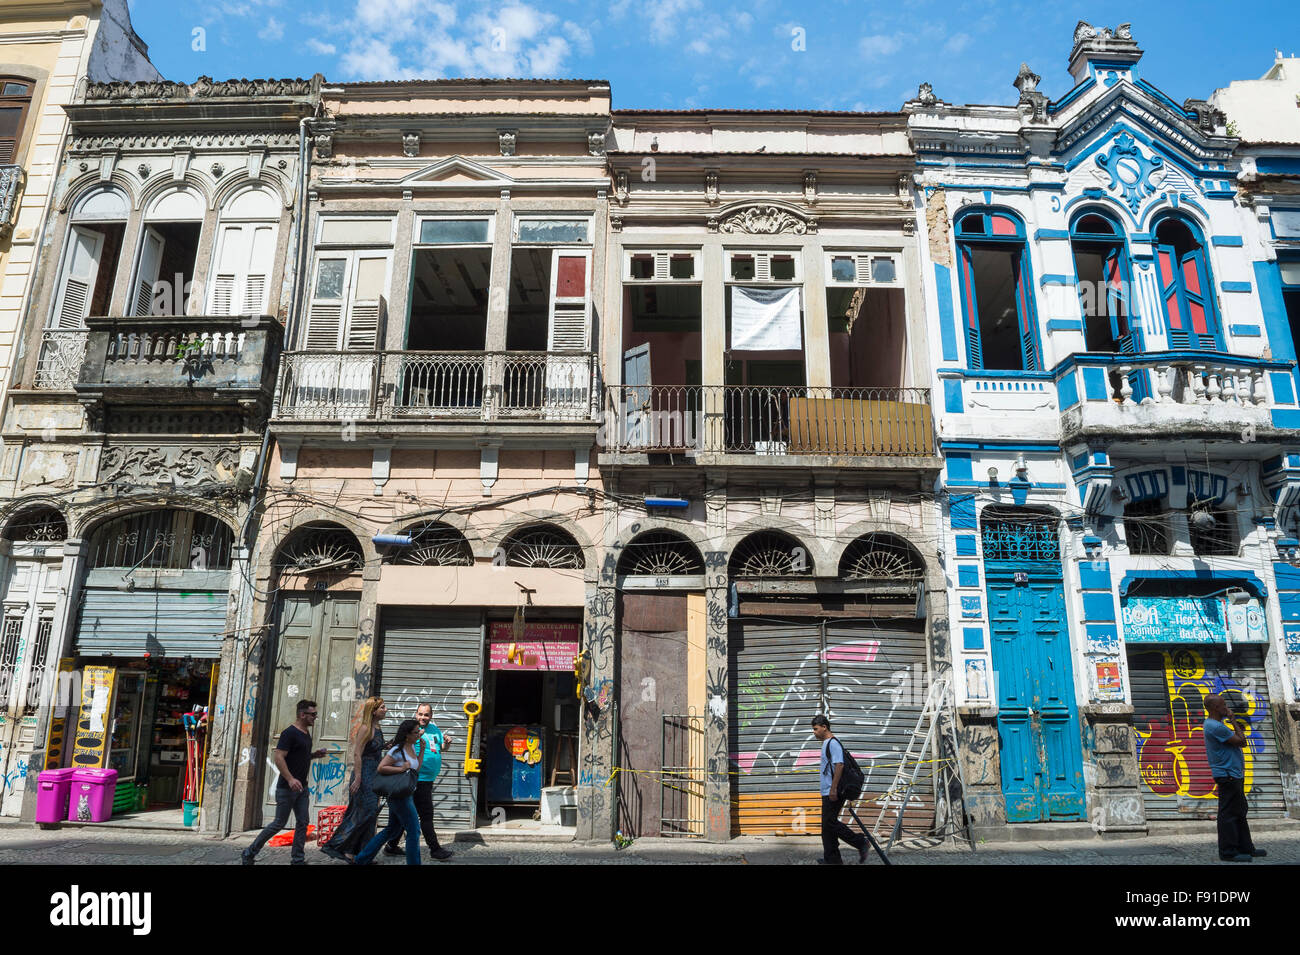 RIO DE JANEIRO, BRAZIL - OCTOBER 22, 2015: Pedestrians pass in front of eclectic architecture in the Santa Teresa - Stock Image